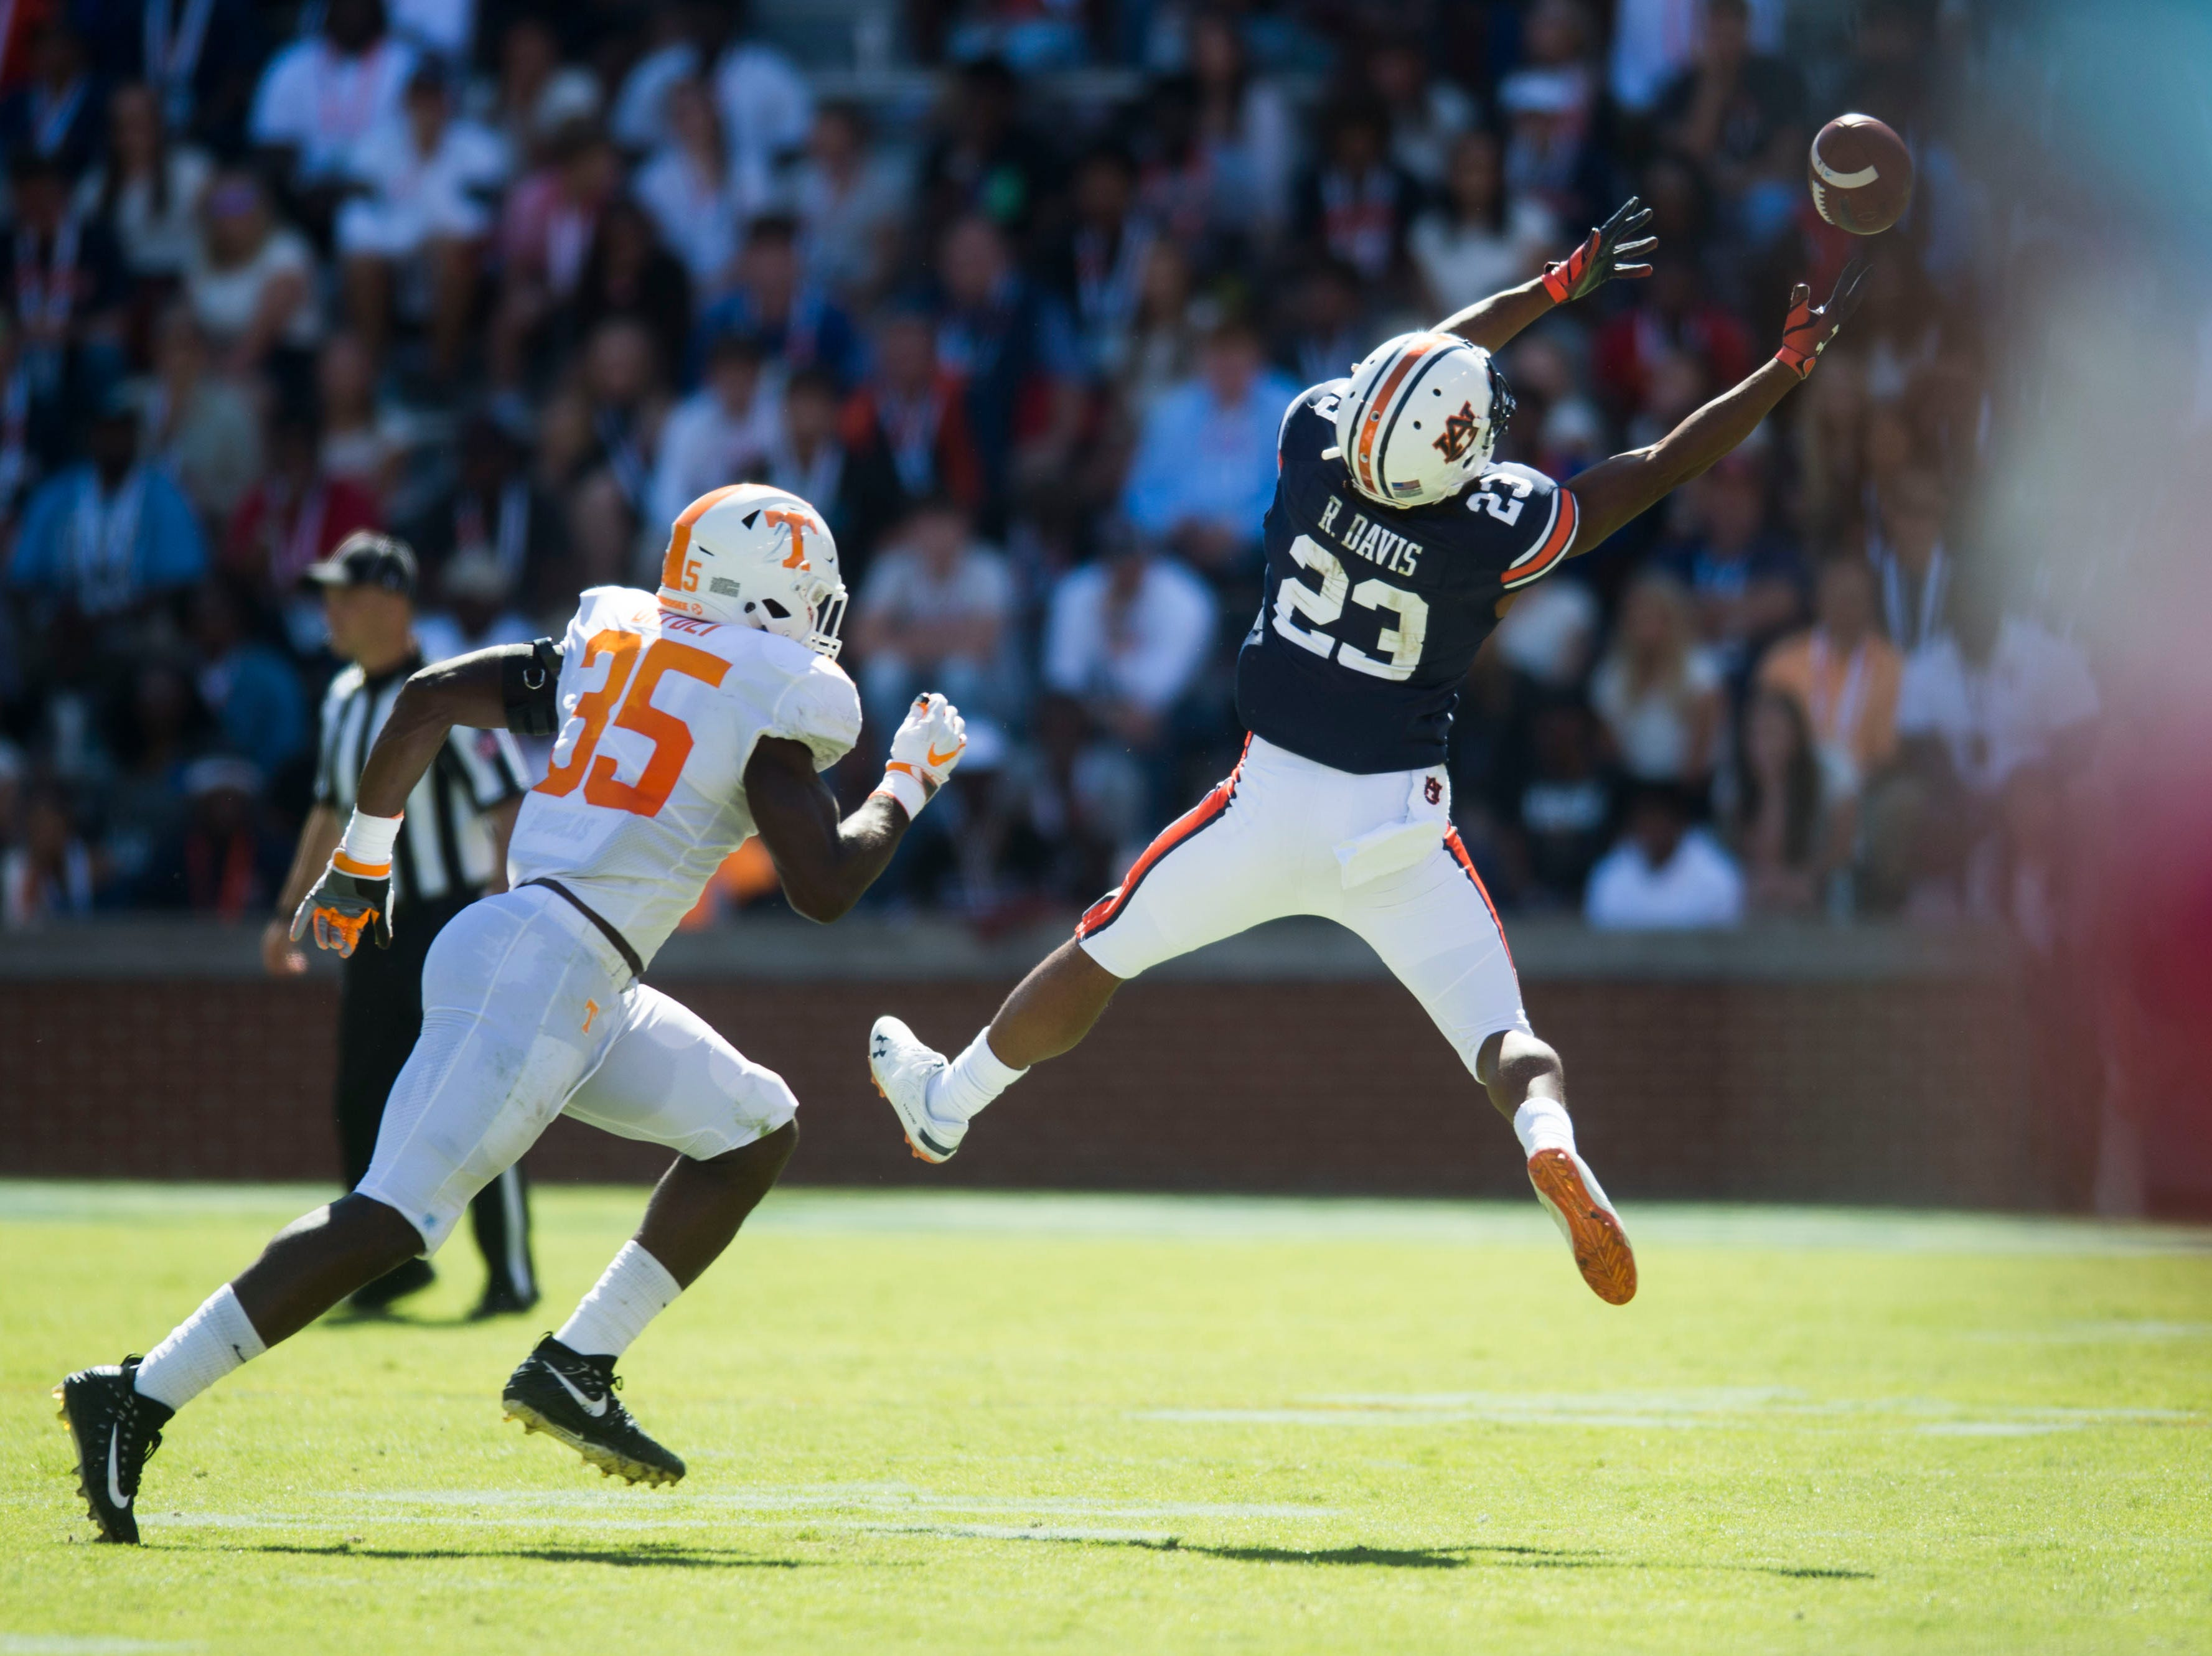 Auburn wide receiver Ryan Davis (23) misses a catch as Tennessee linebacker Daniel Bituli (35) defends him during a game between Tennessee and Auburn at Jordan-Hare Stadium in Auburn, Ala. Saturday, Oct. 13, 2018. Tennessee defeated Auburn 30-24.